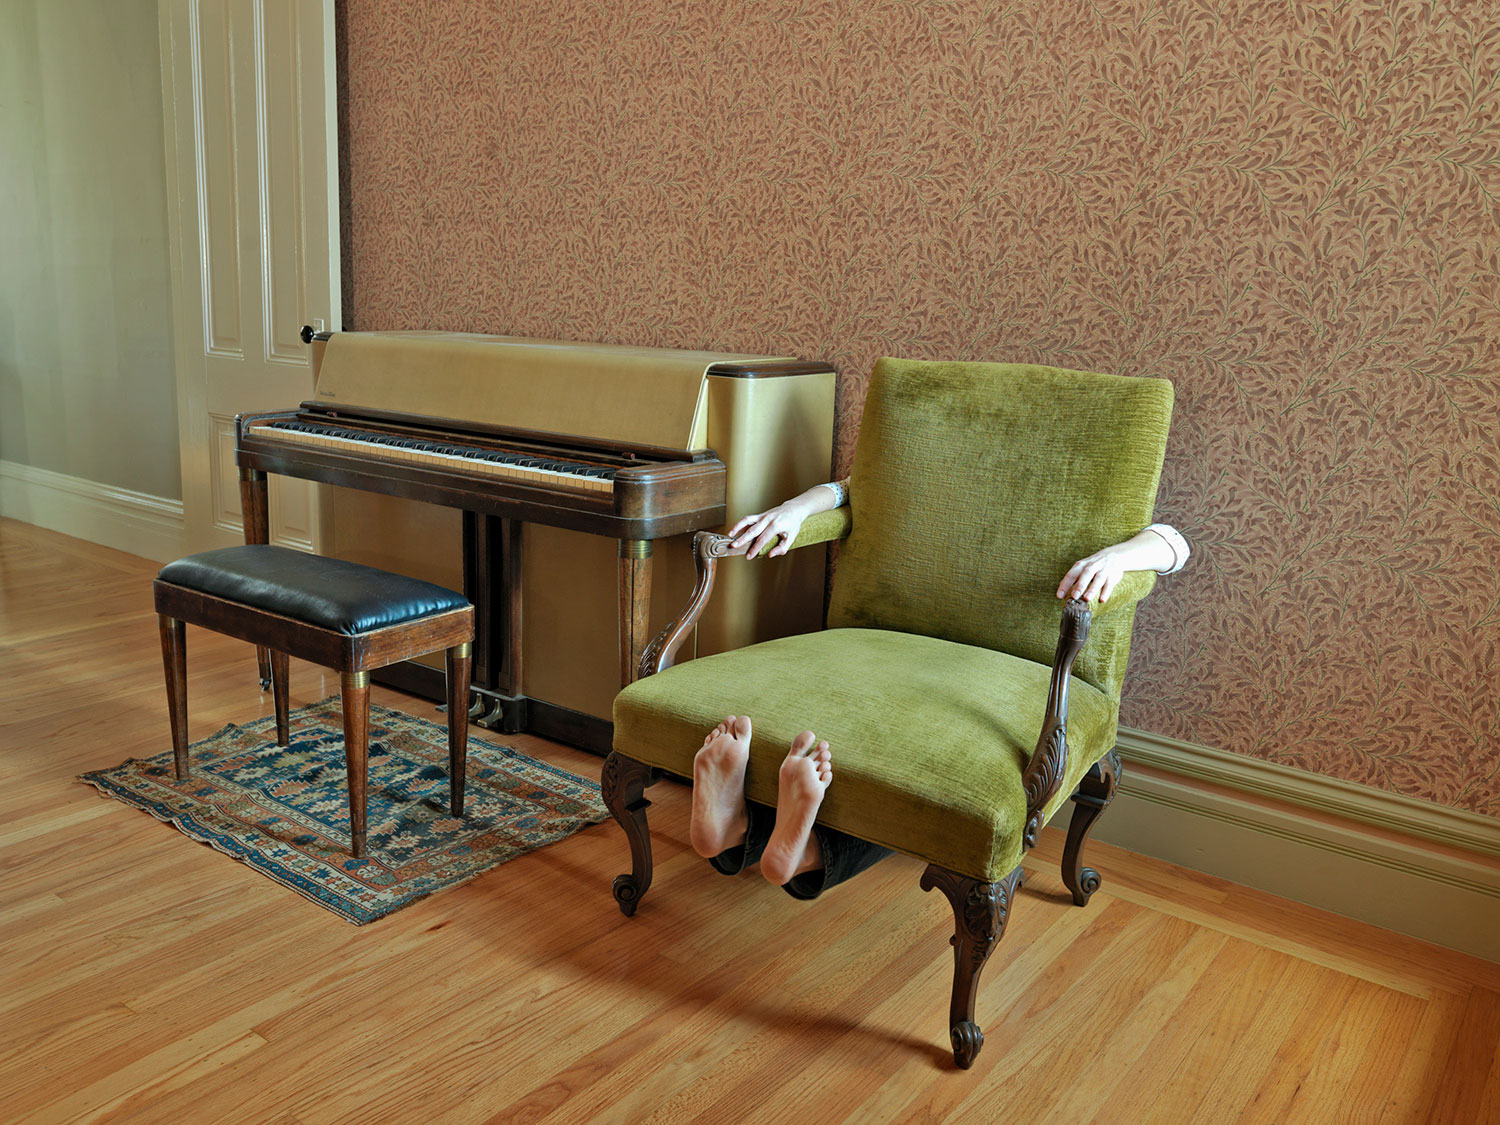 Sitting Under My Grandfather's Chair, 2011 by Lee Materazzi | Yellowtrace.